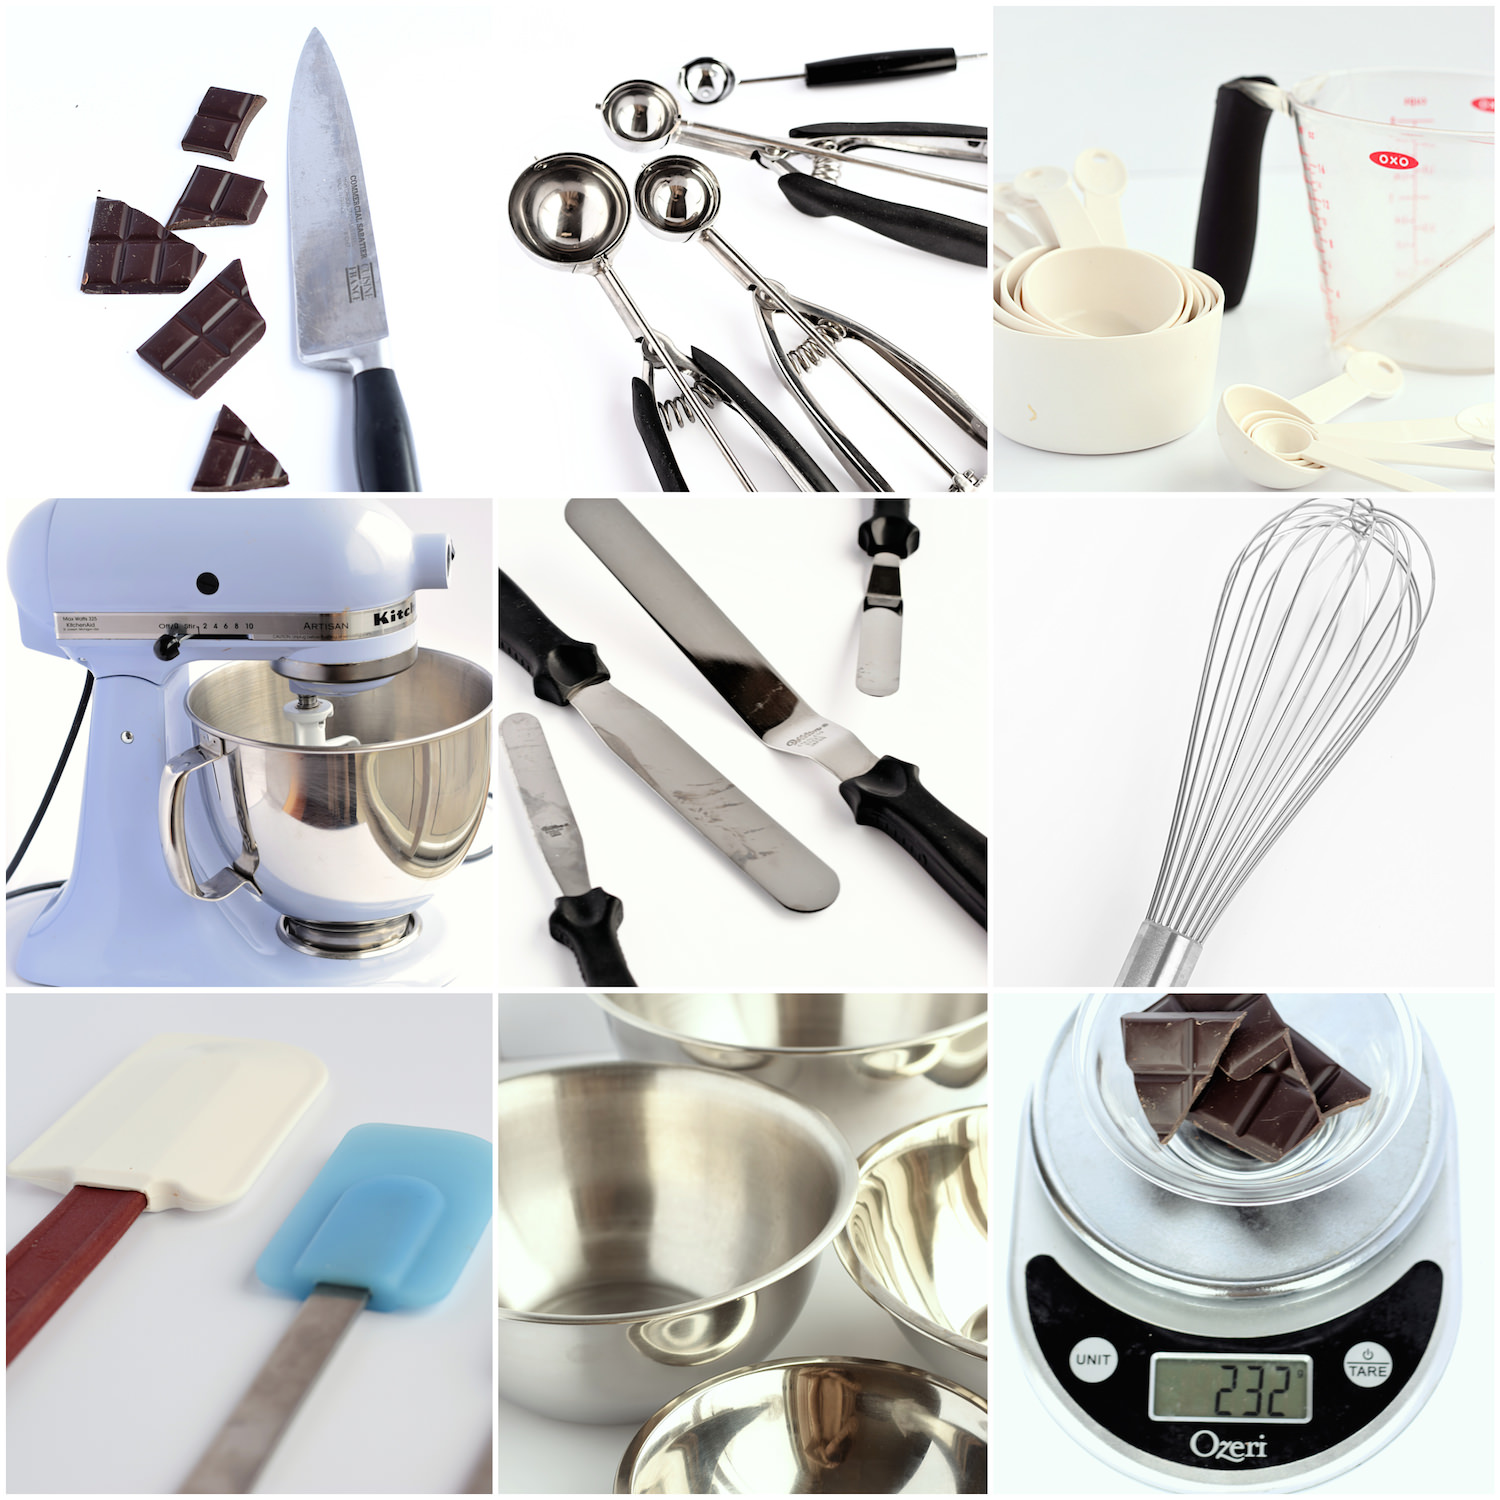 My Top 10 Baking Tools | Truffles and Trends